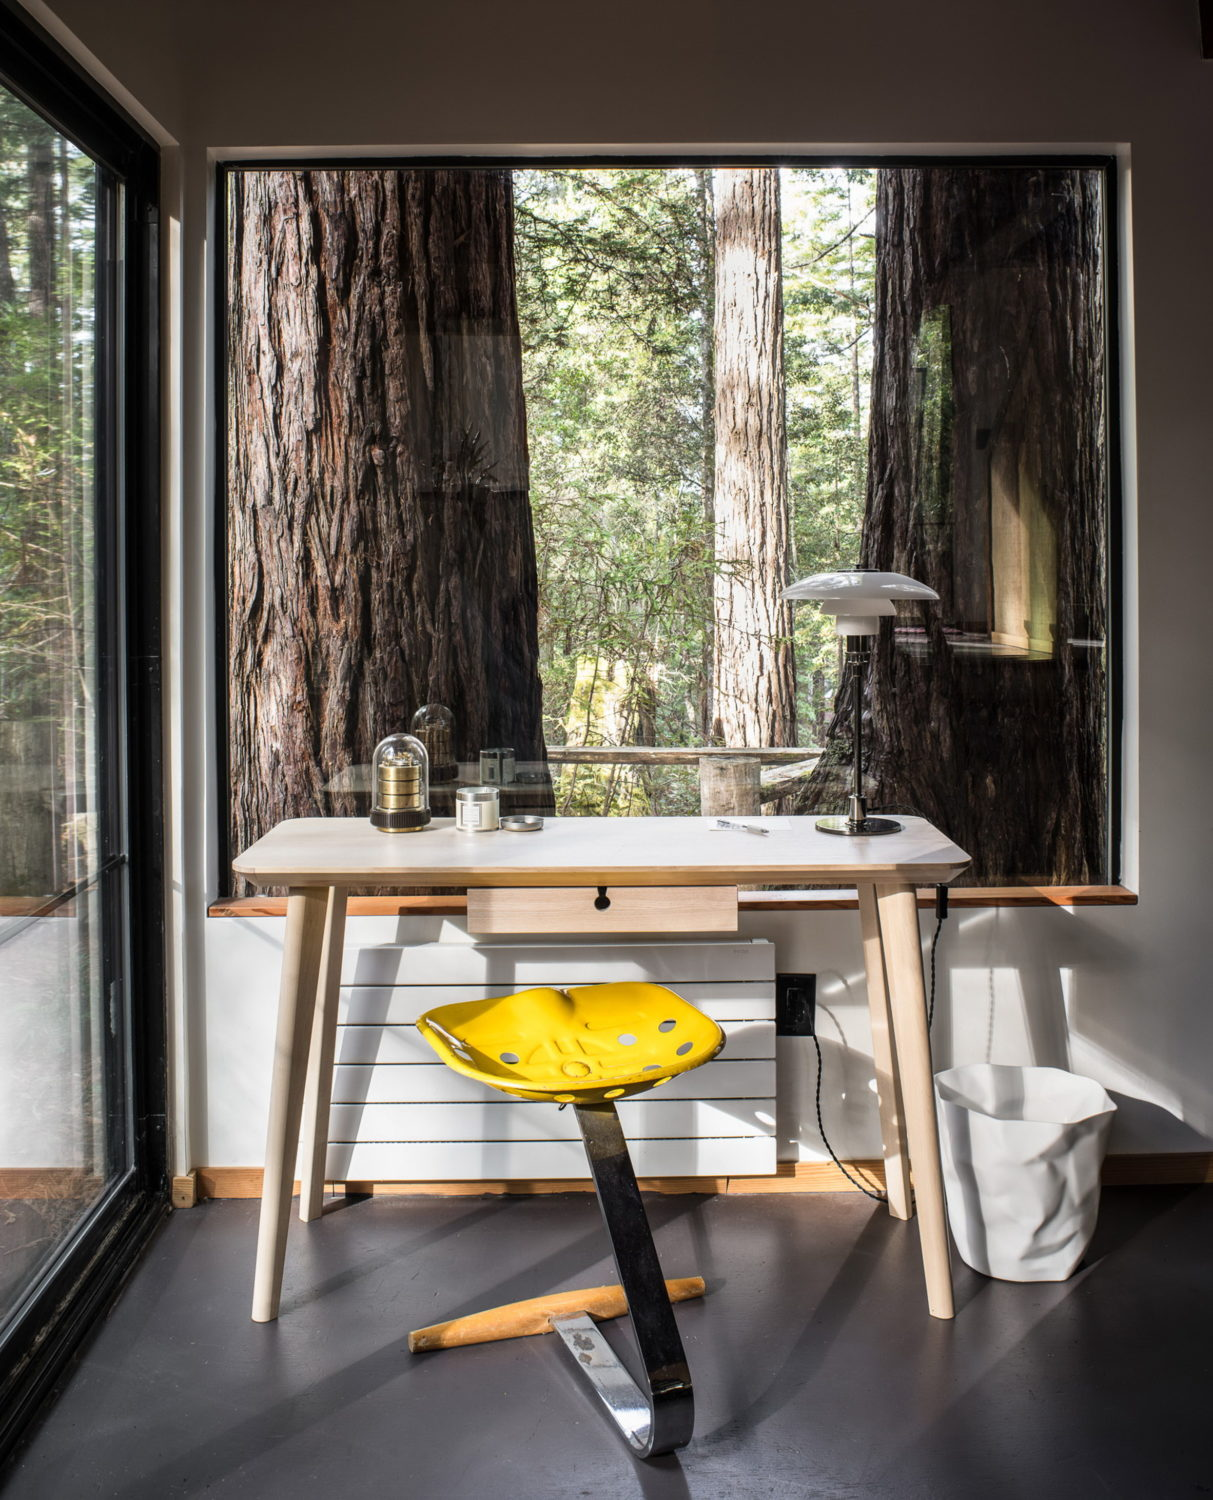 The Sea Ranch Cabin by Framestudio